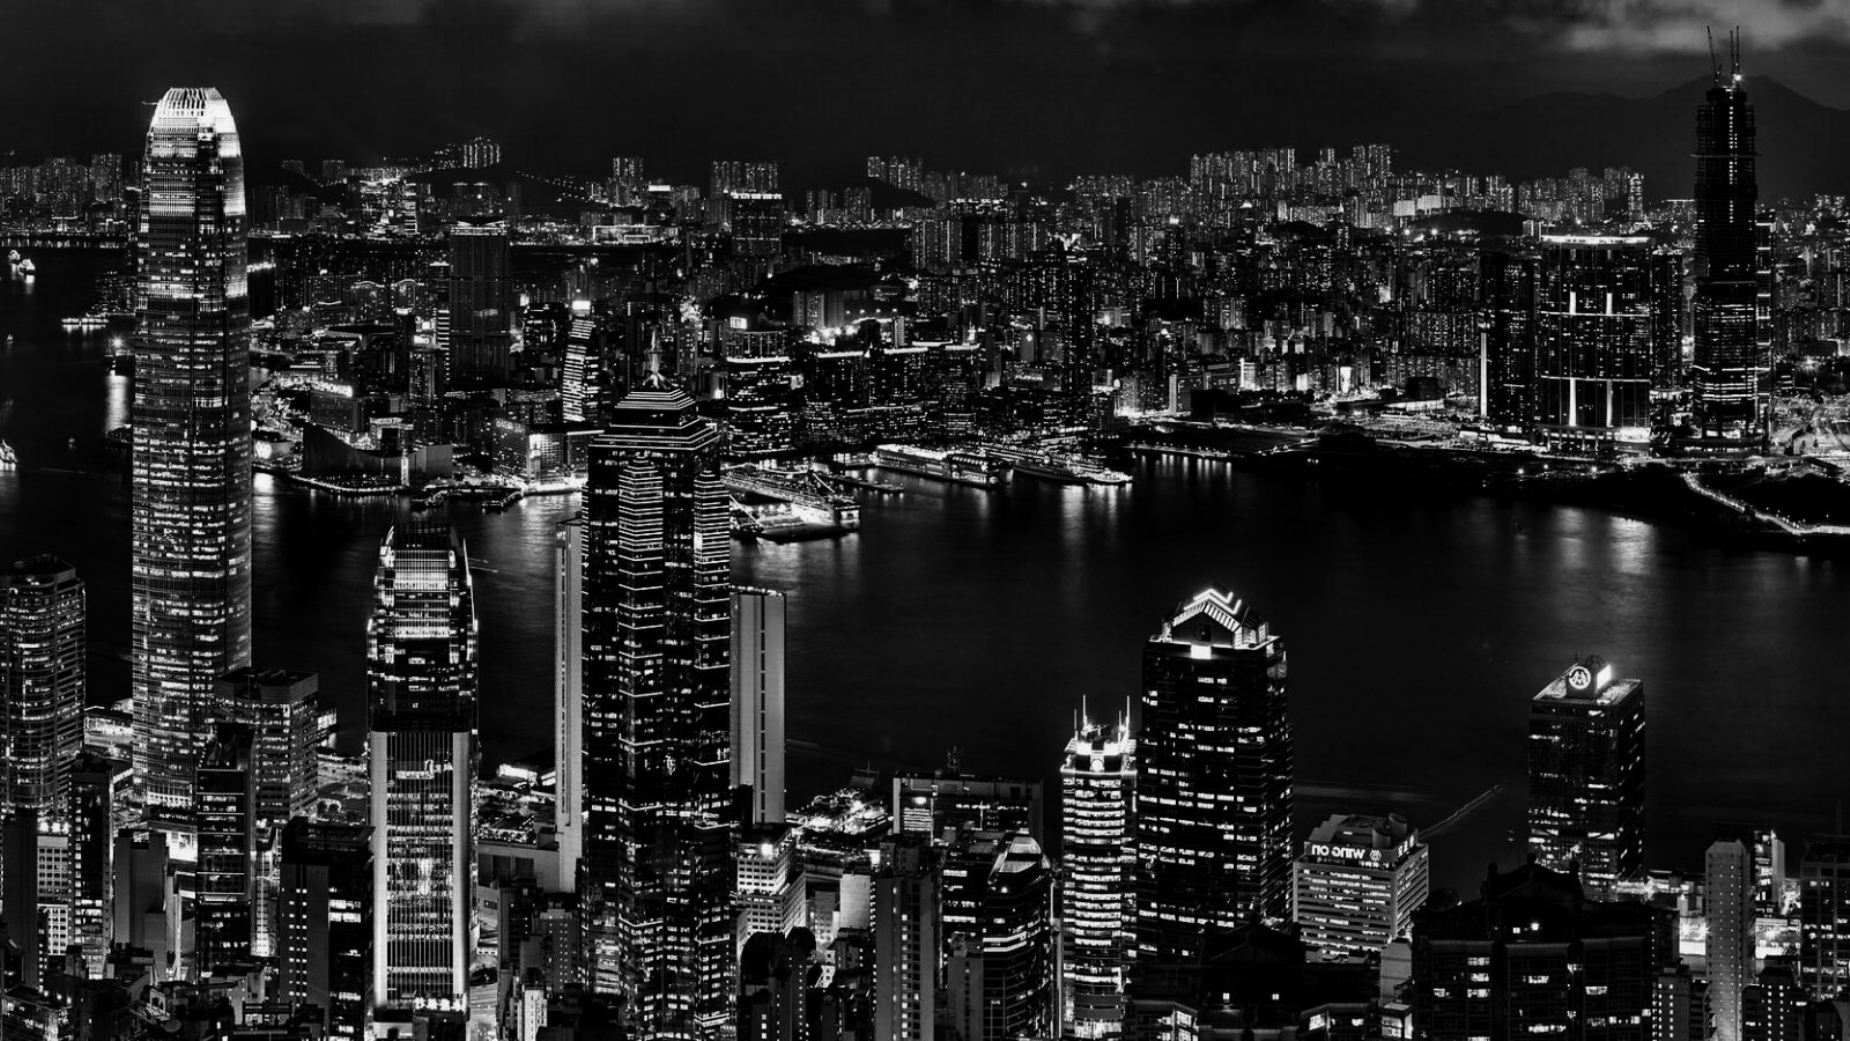 hong-kong-city-night-hd-wallpaper-900x1600[1] (1600x900).jpg